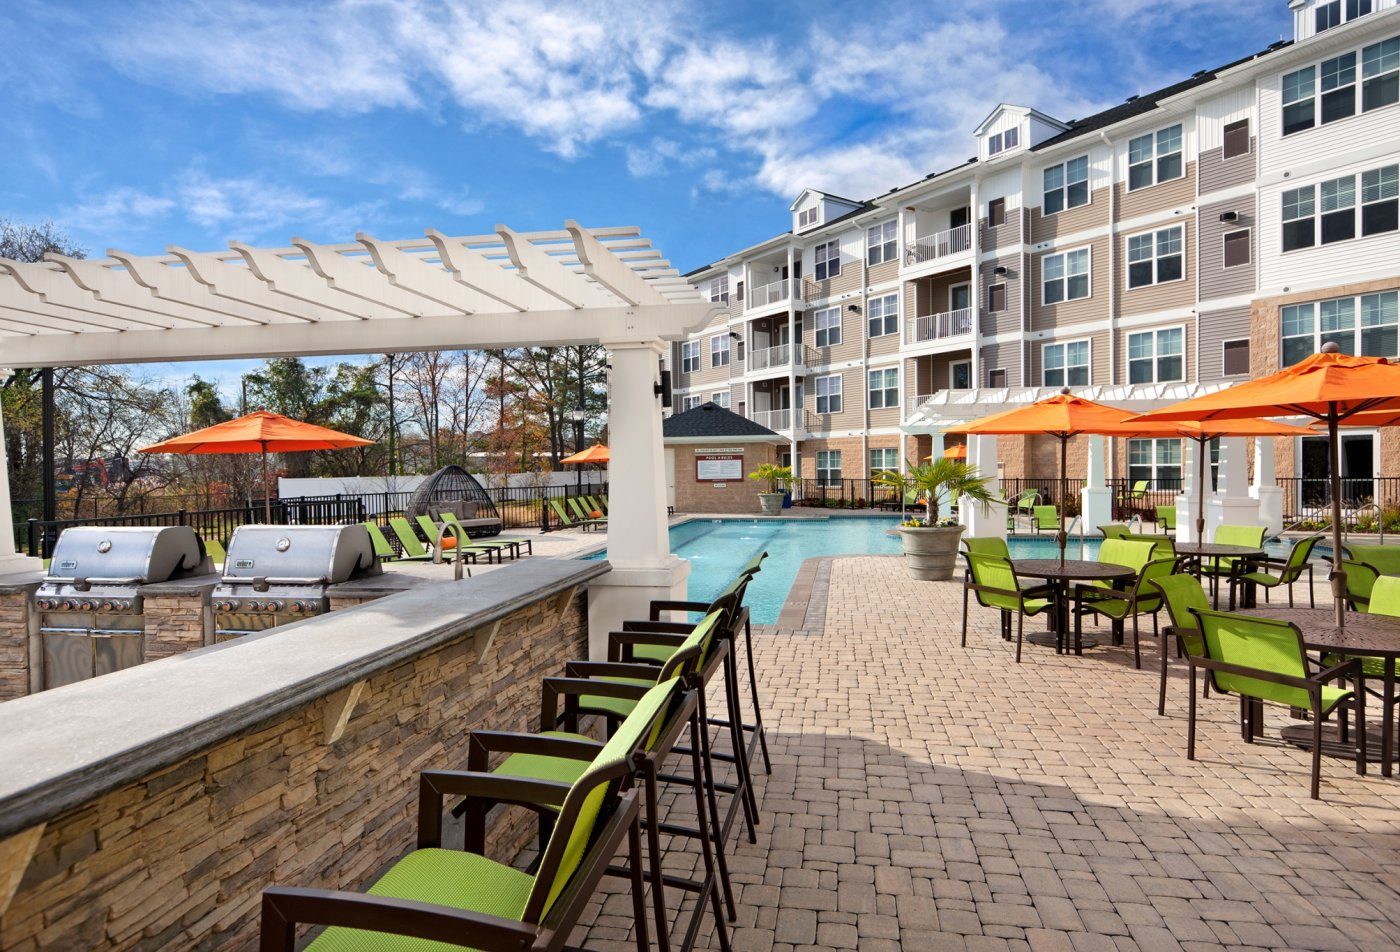 Apartments in Norfolk For Rent   Solace 2. Luxury Apartments in Virginia Beach   Solace